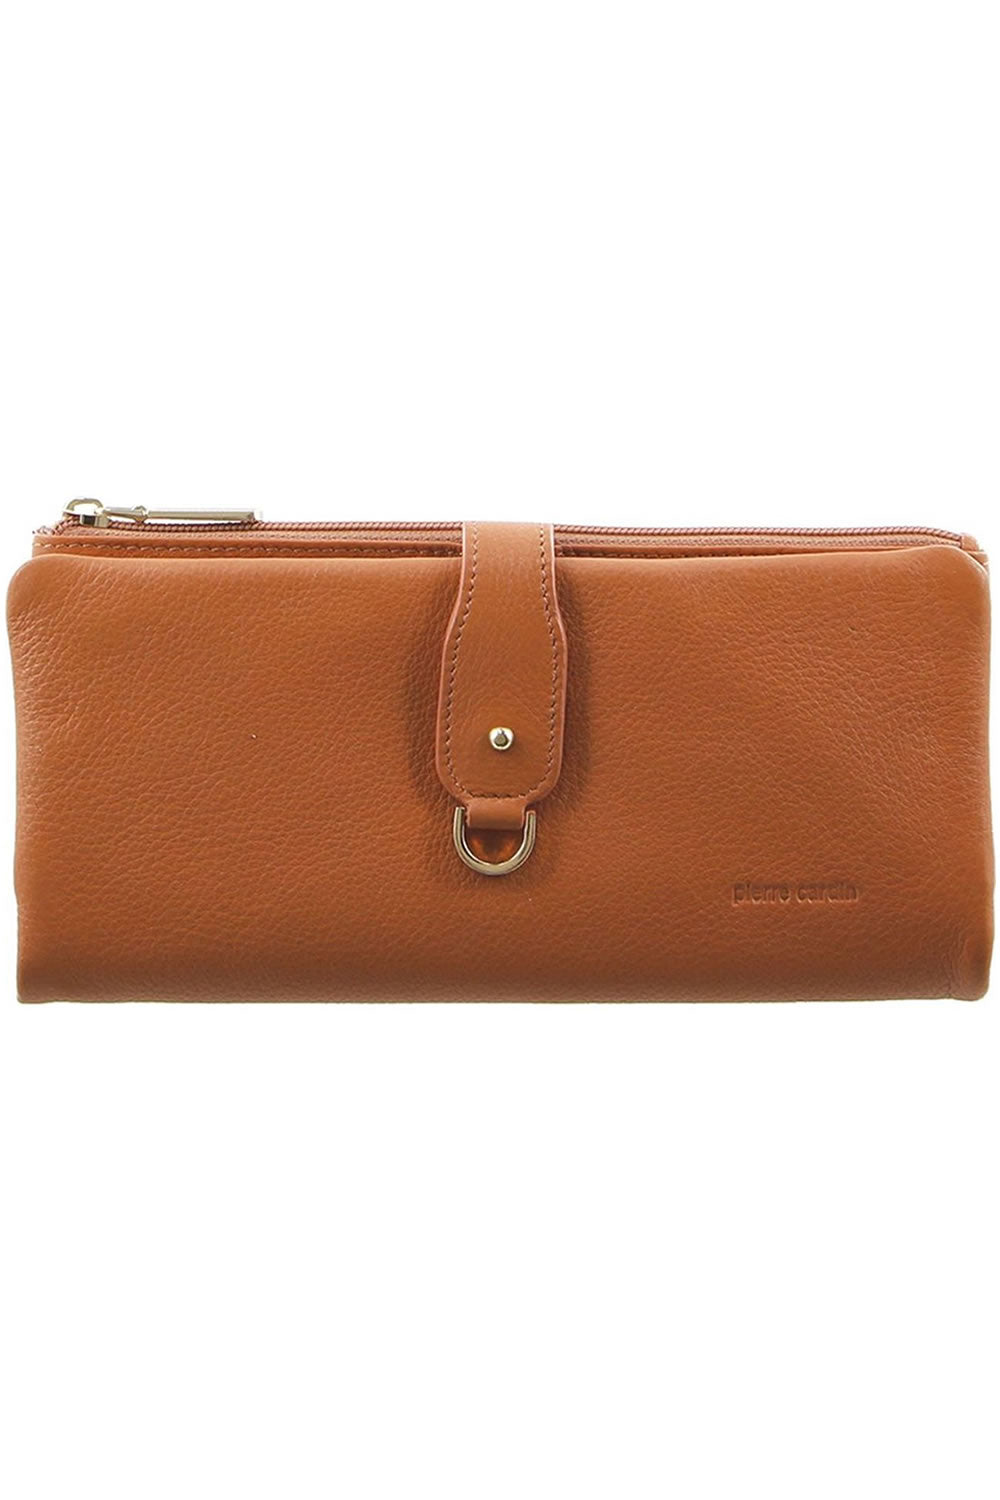 Pierre Cardin Passport Leather Wallet